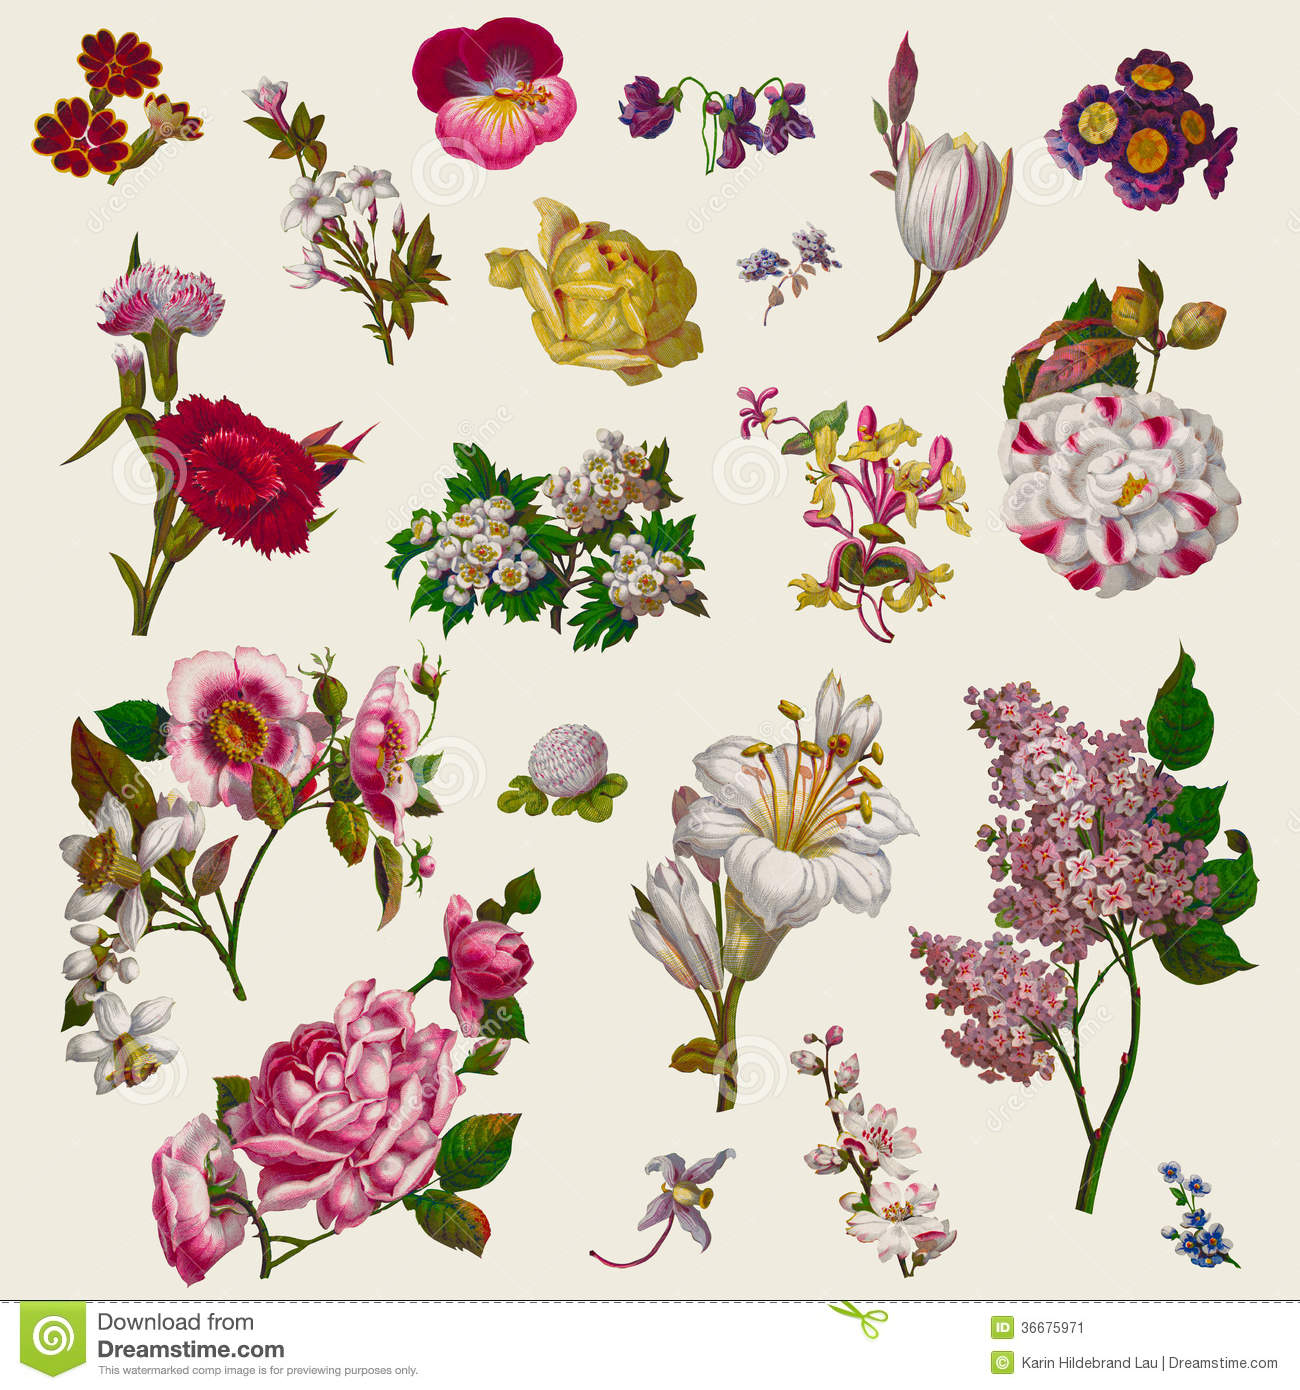 Victorian floral images png transparent download Vintage Victorian Flowers Clip Art Stock Image - Image: 36675971 png transparent download